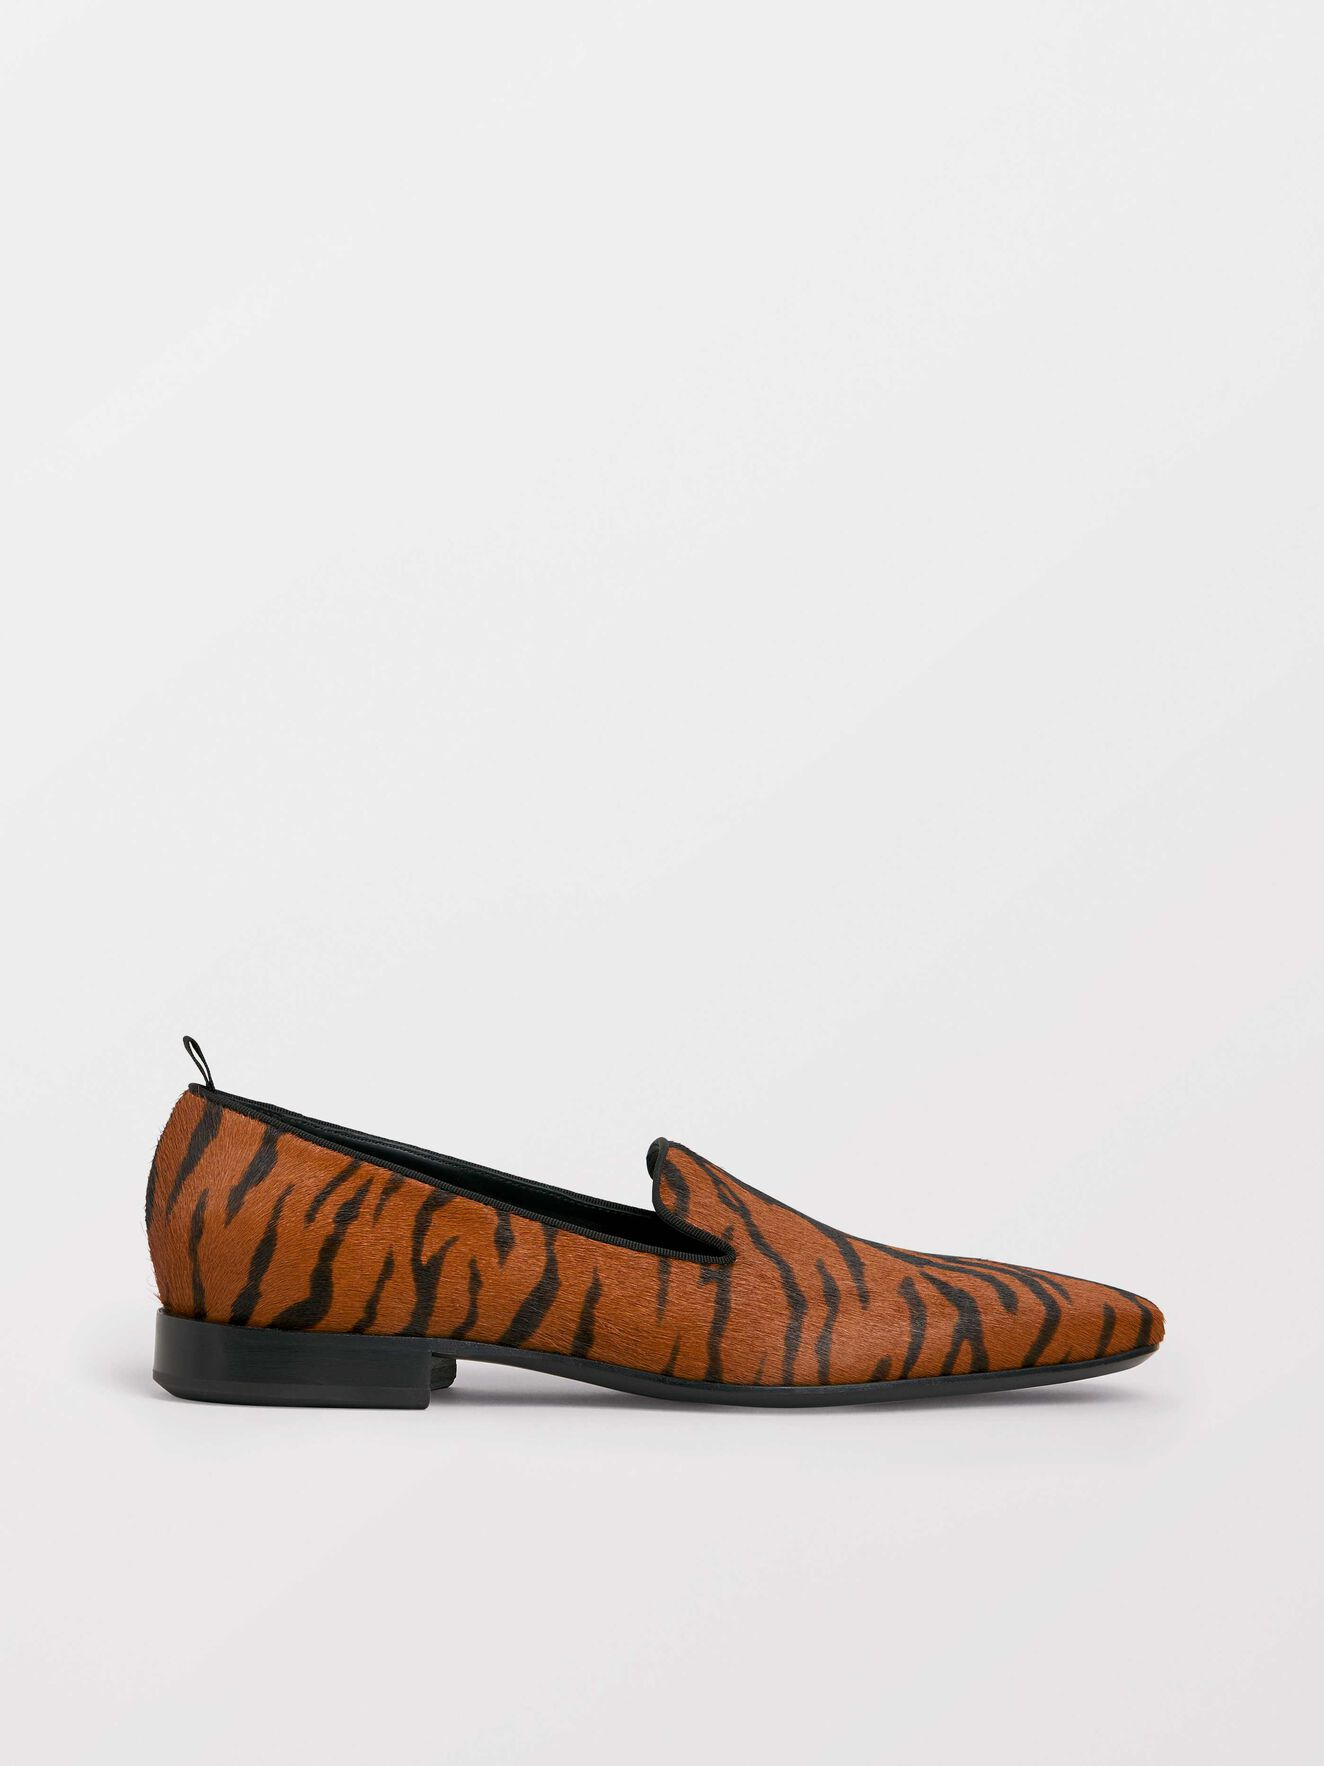 Sartor Loafers in ARTWORK from Tiger of Sweden